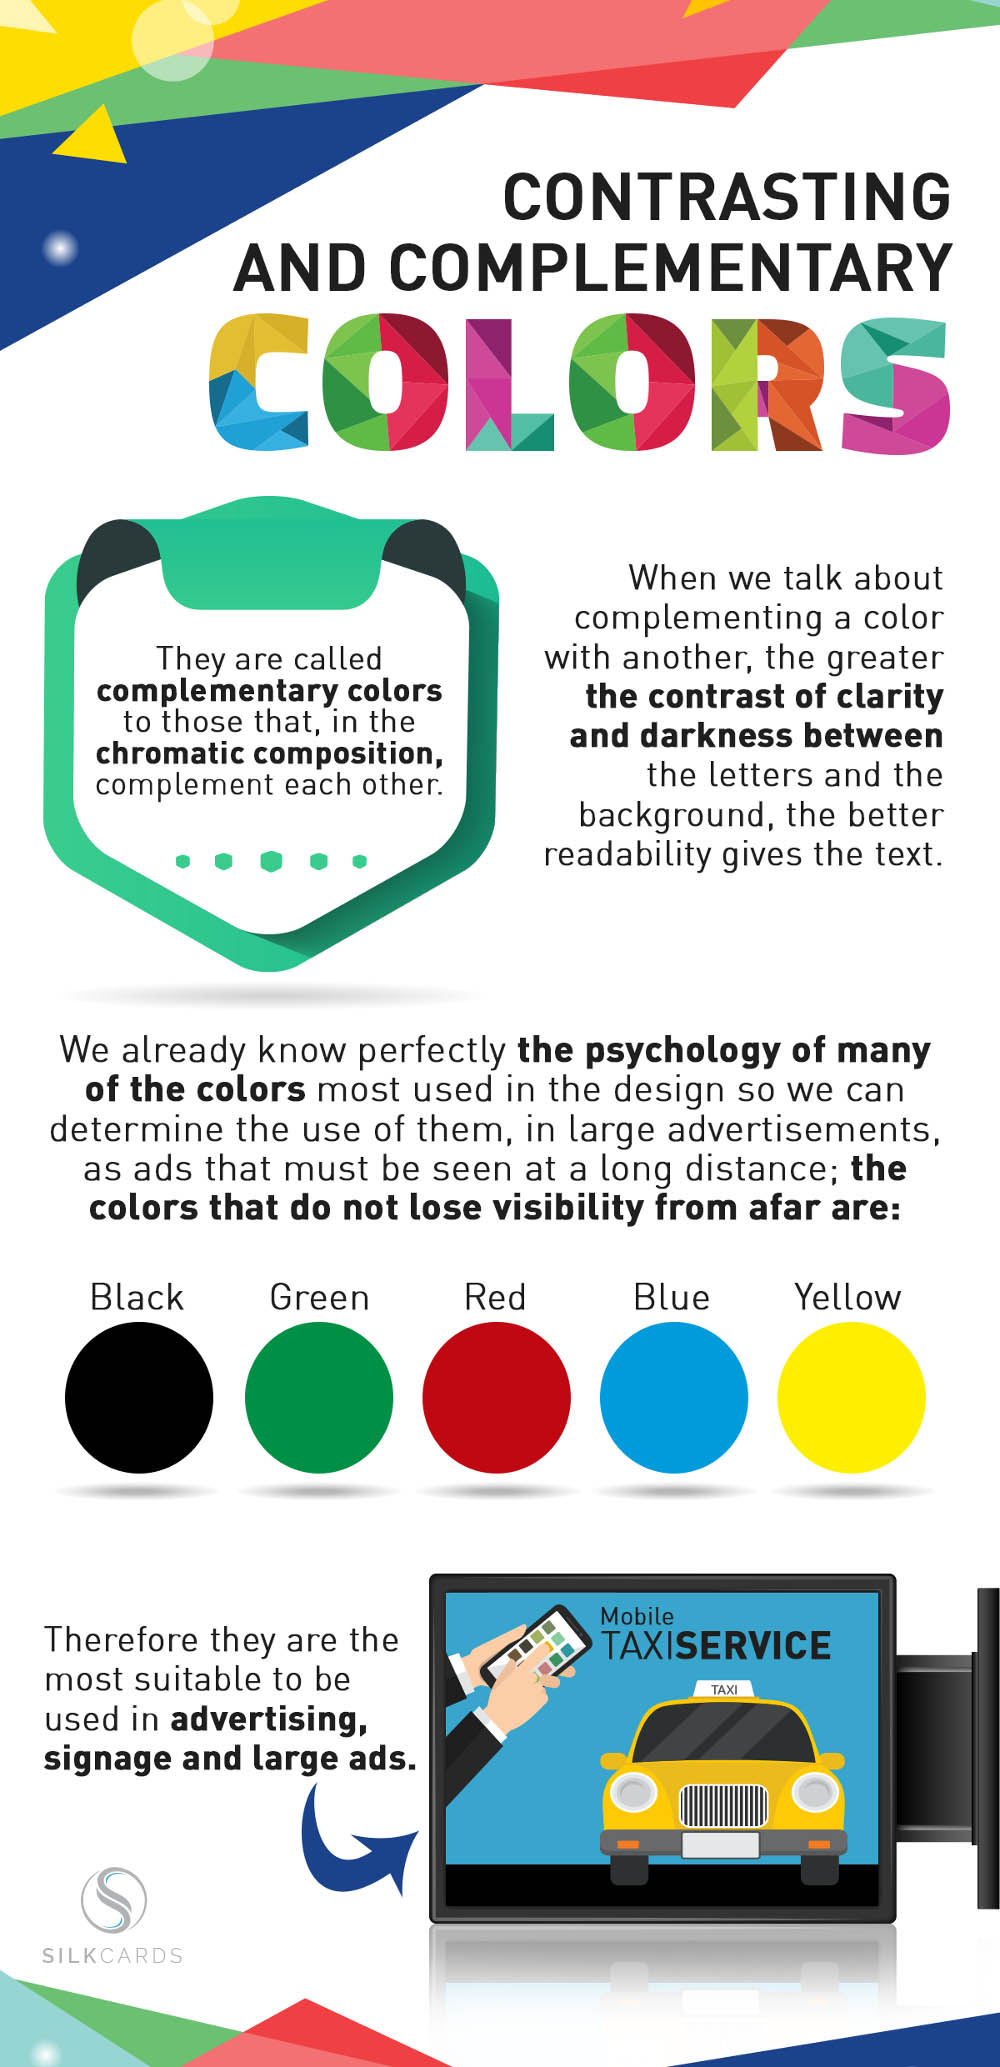 When we talk about complementing a color with another, the greater the contrast of clarity and darkness between the letters and the background, the better readability gives the text.